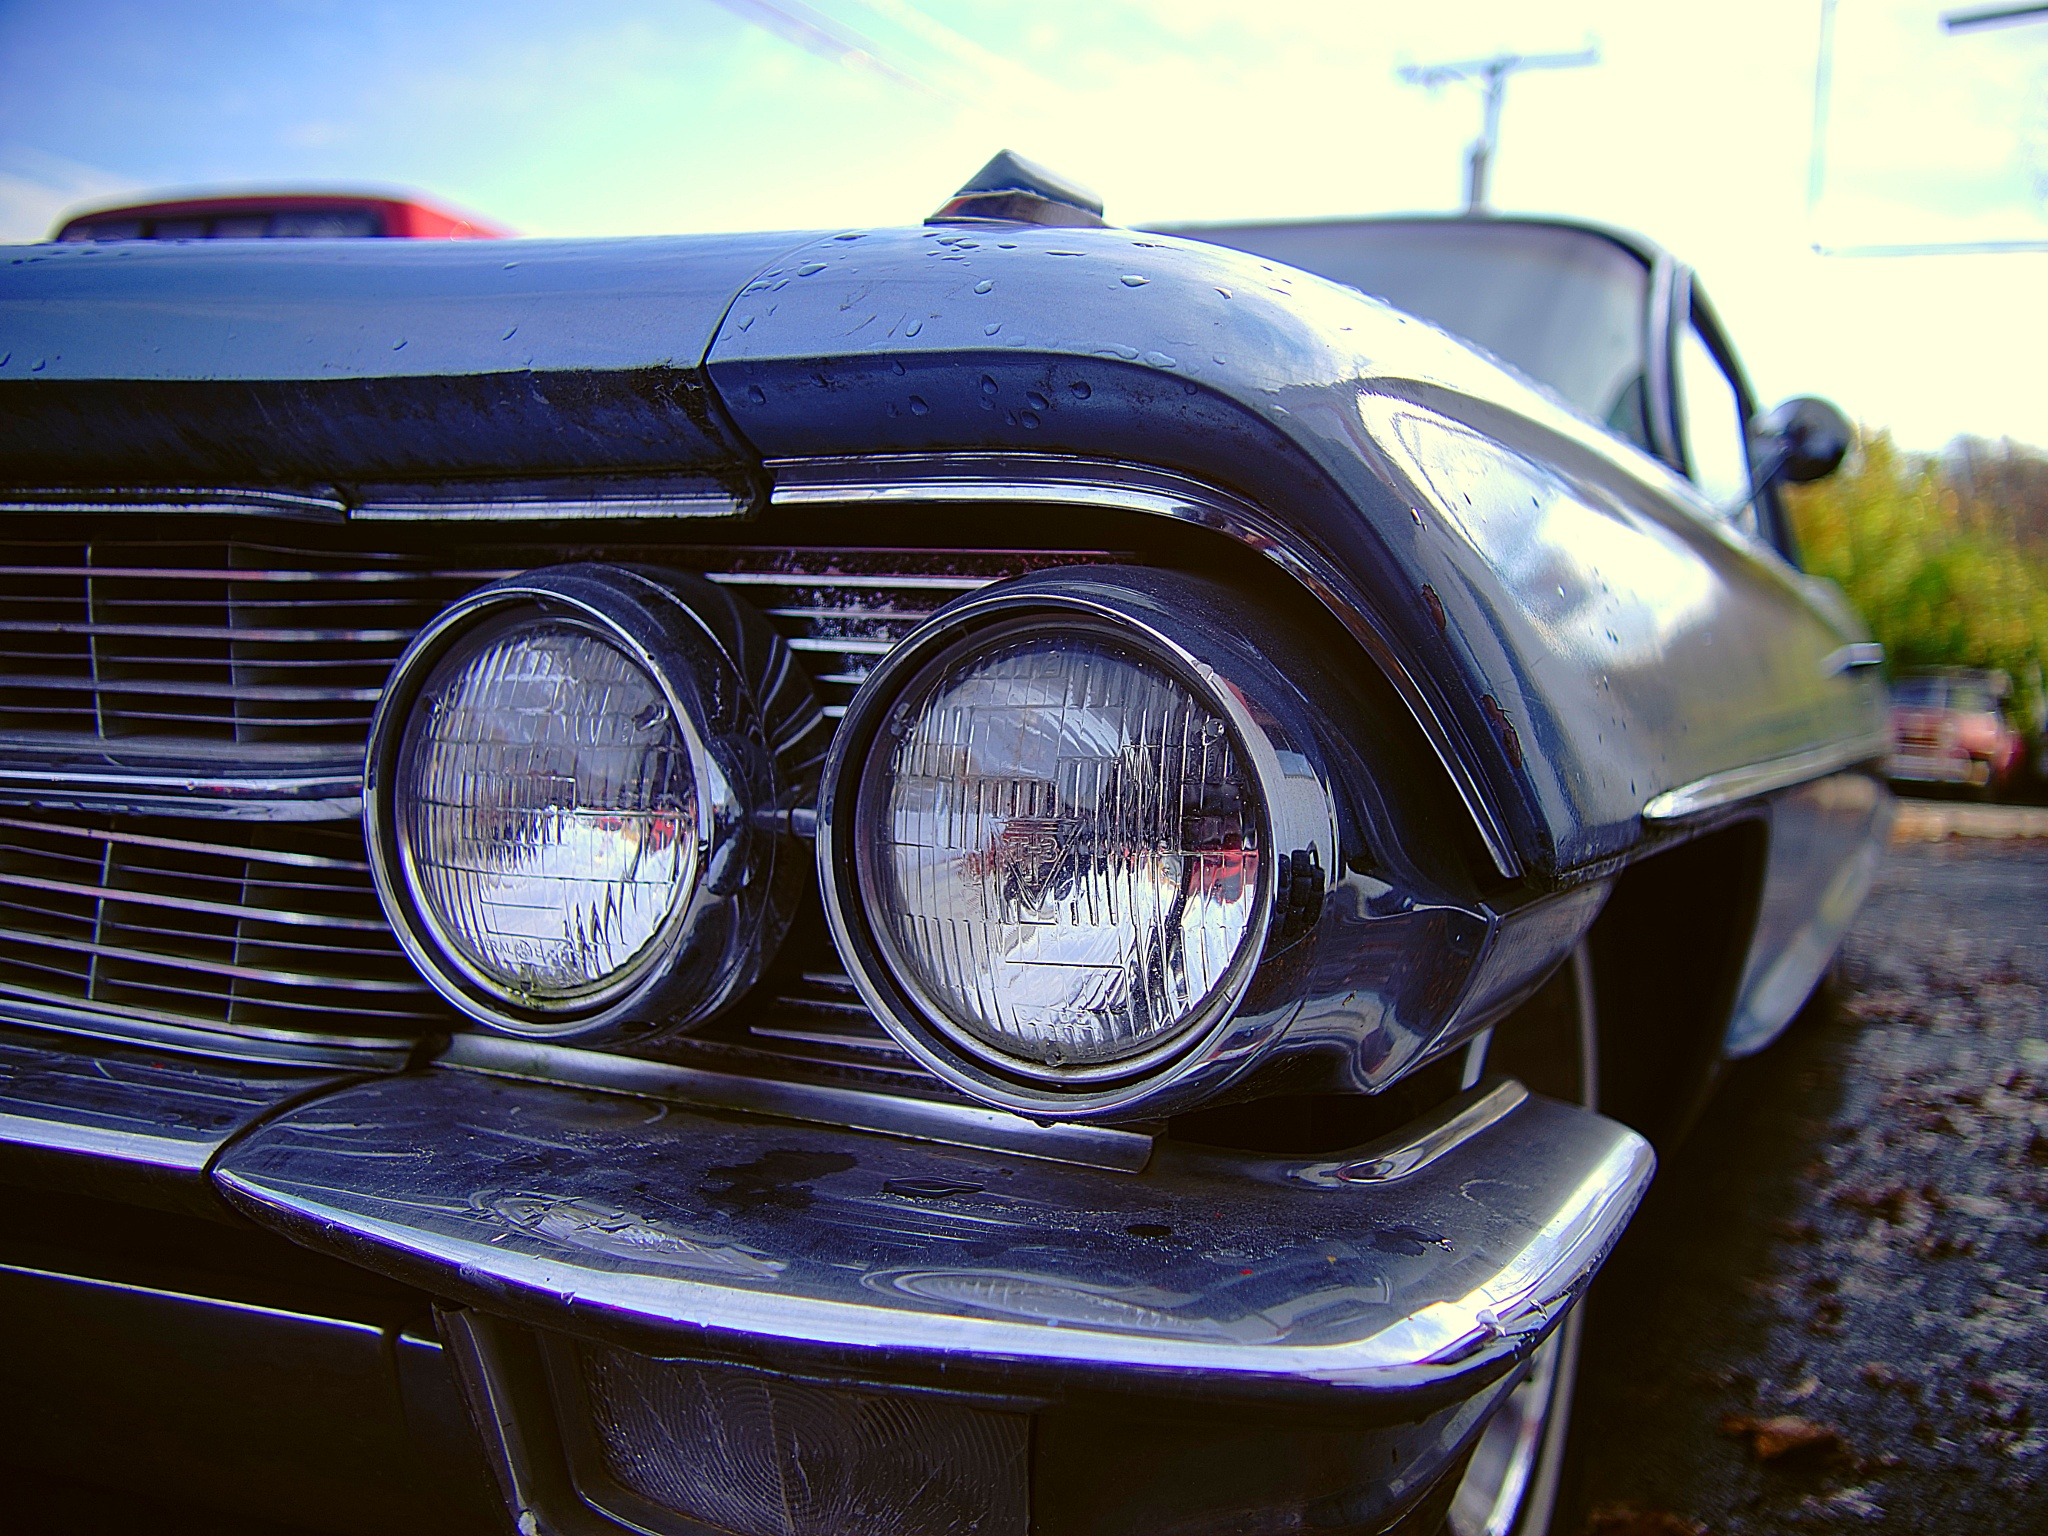 caddy II by ColoursPhotography